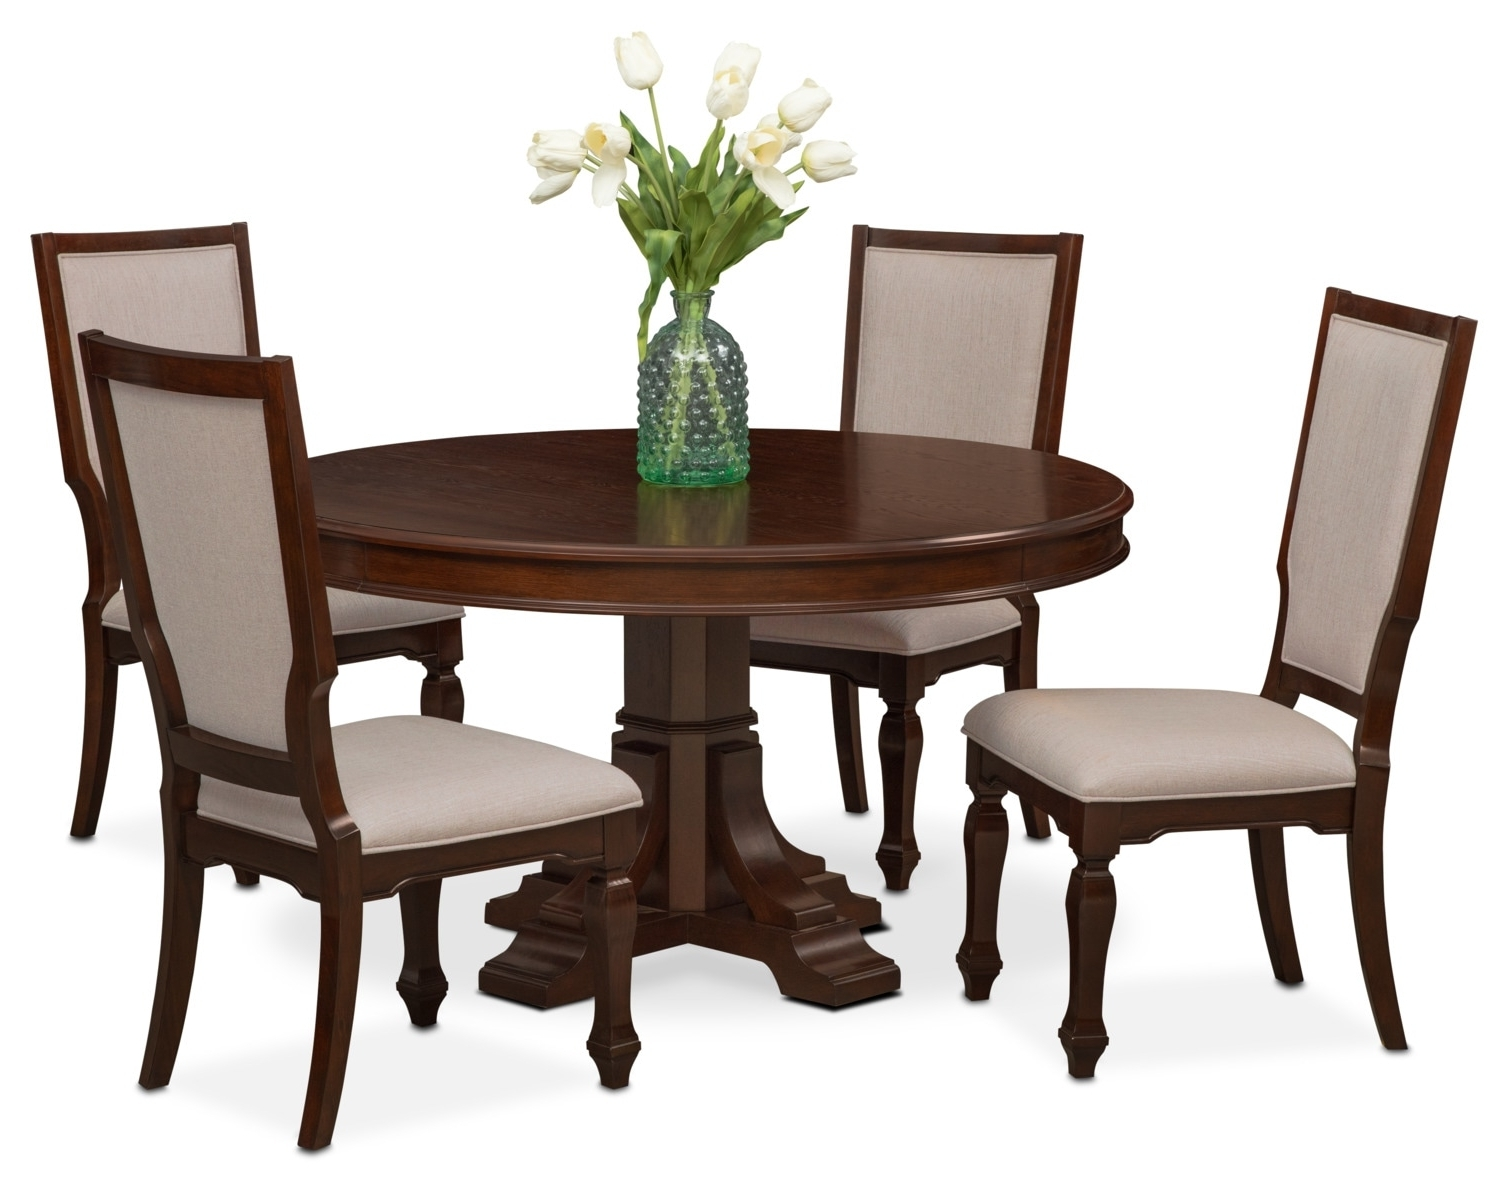 Vienna Round Dining Table And 4 Upholstered Side Chairs - Merlot for Preferred Vienna Dining Tables